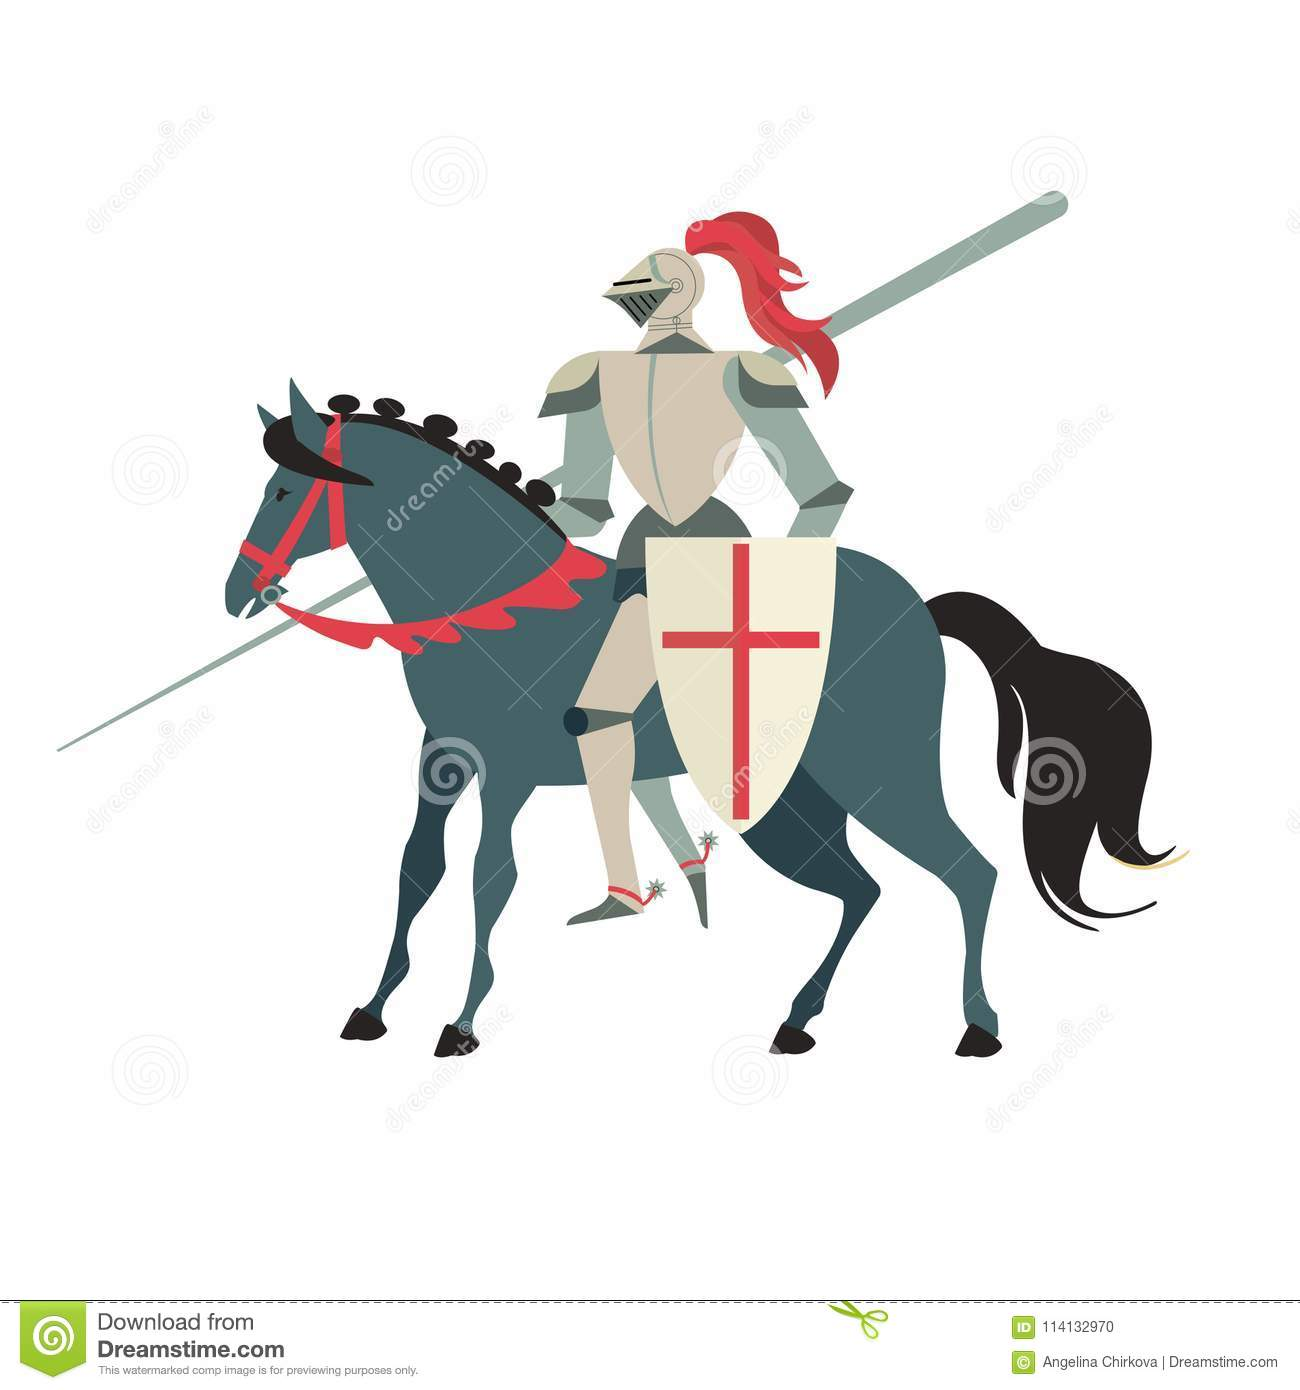 Armoured Medieval Knight Riding On A Horse With Spear And Shield Flat Illustration Isolated On White Background Stock Vector Illustration Of Battle Carrying 114132970